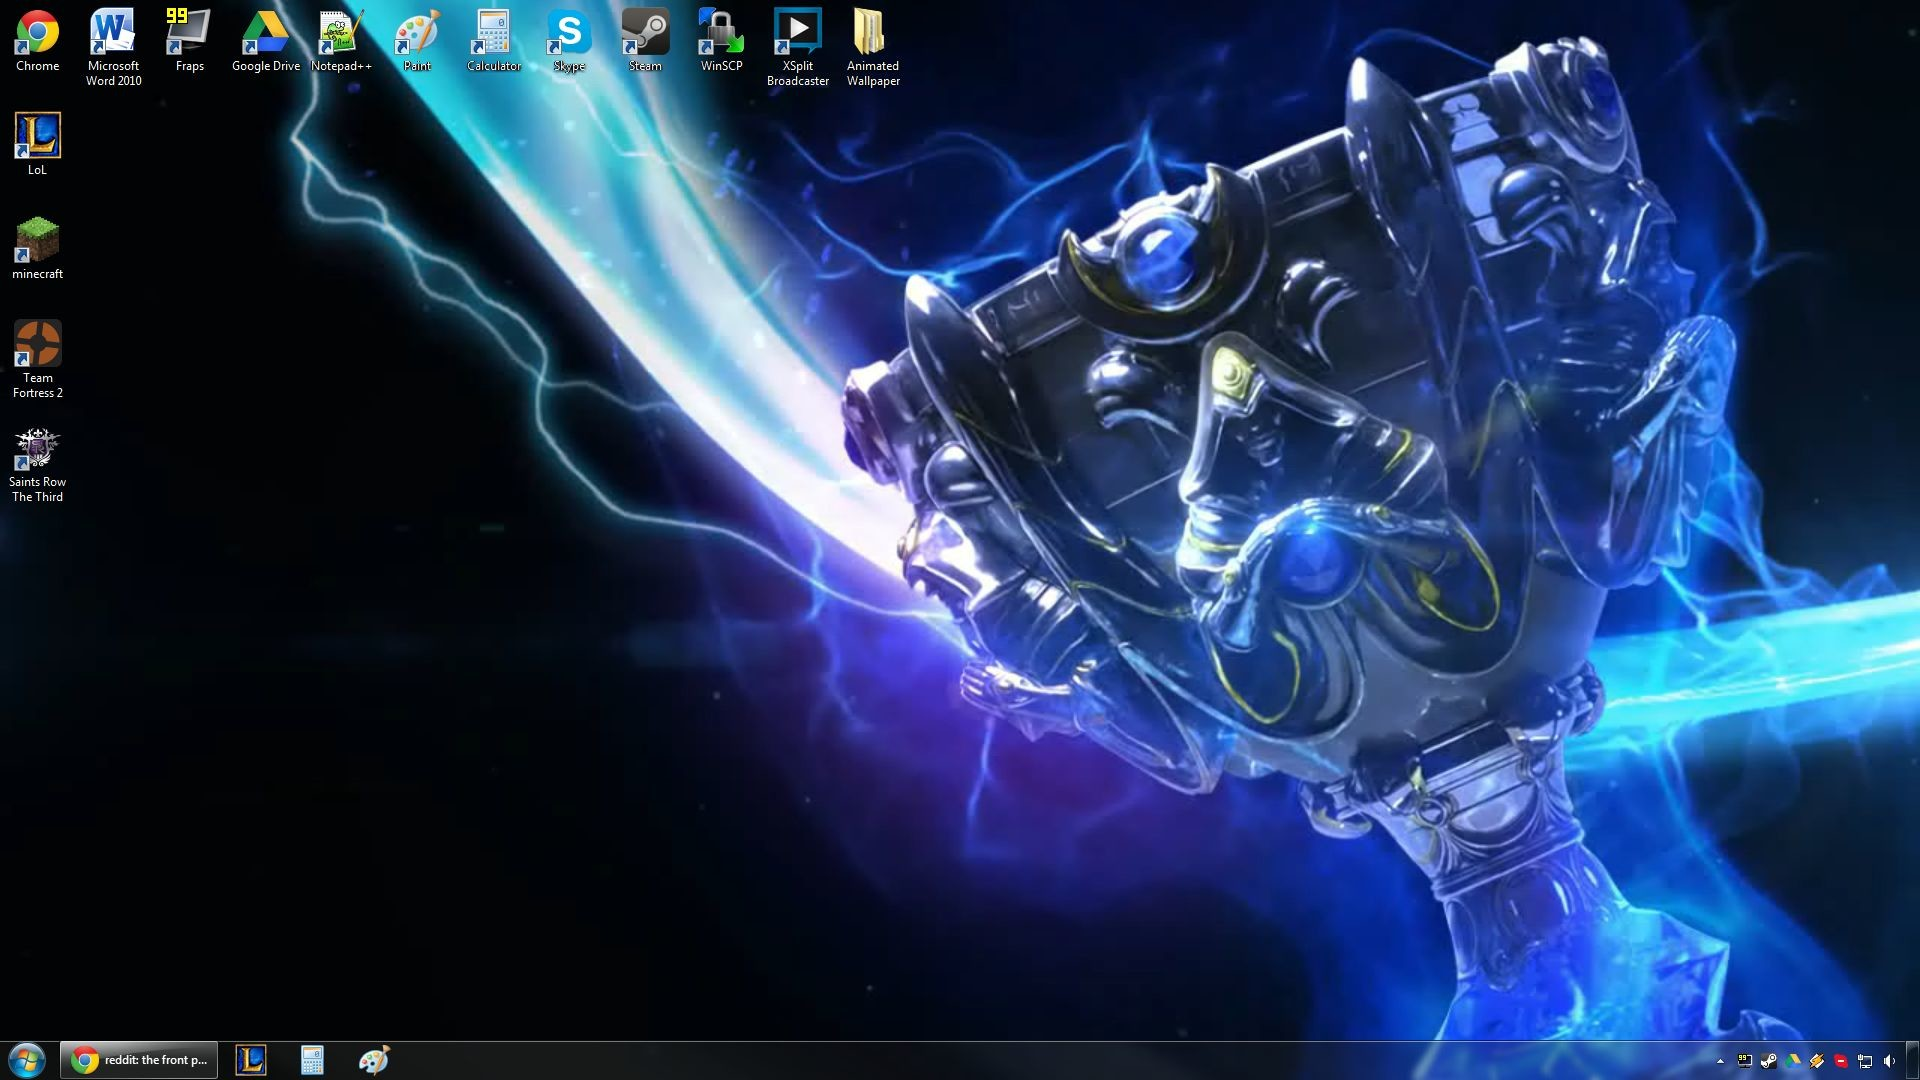 Animated Wallpaper 73 Images